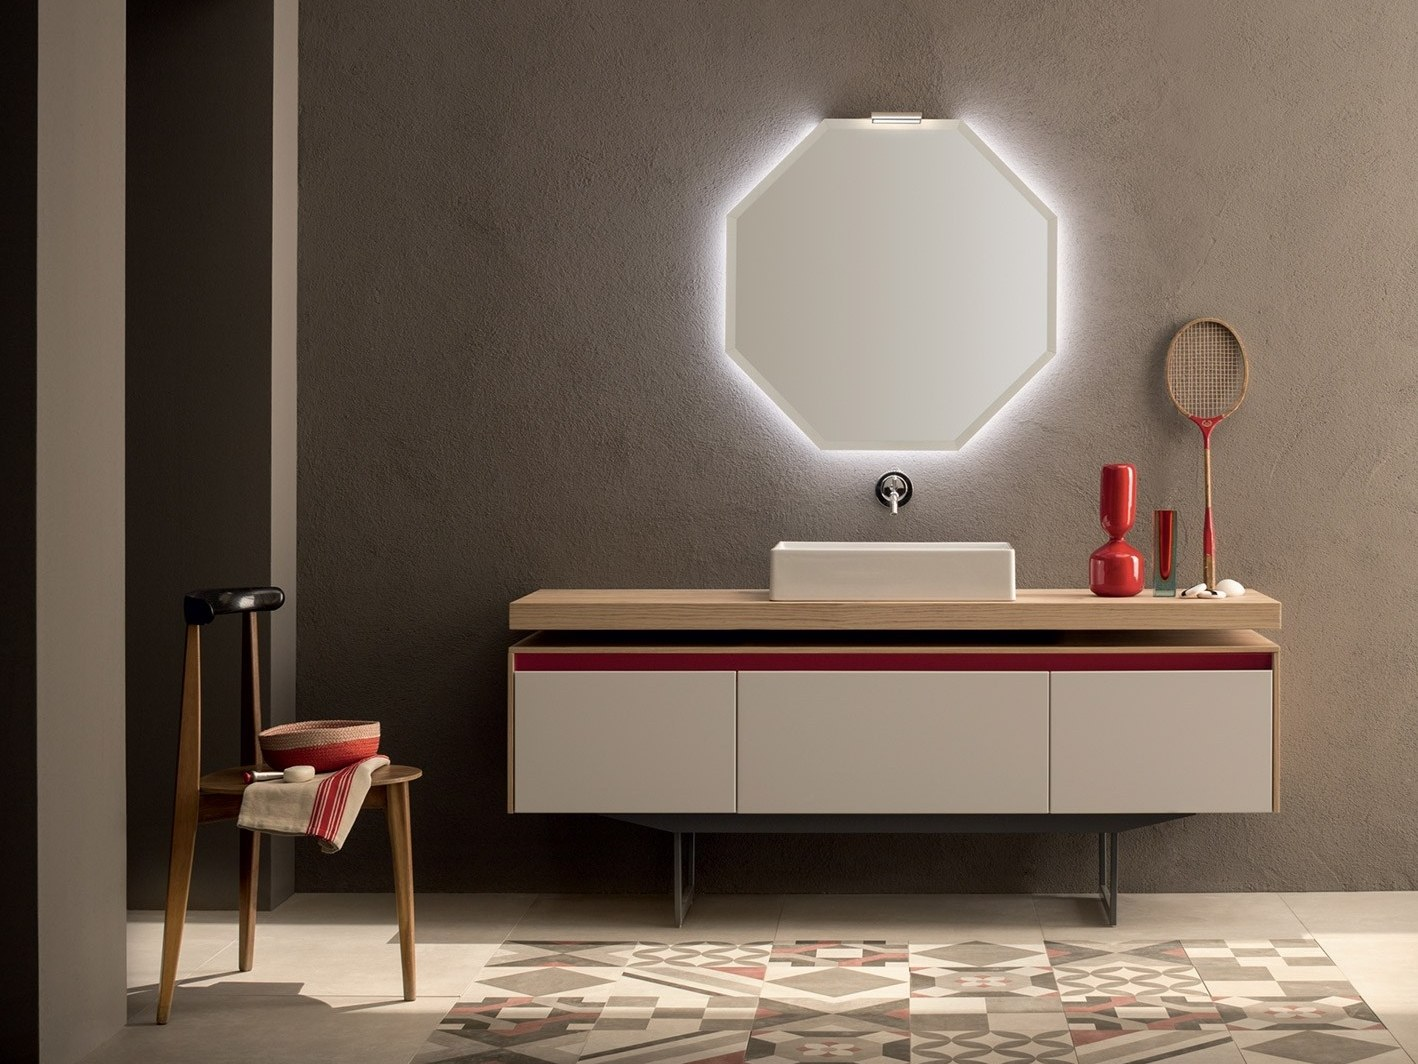 Vanity unit with drawers 28 rovere nodato by rab arredobagno for Design moderno di mobili in legno massello